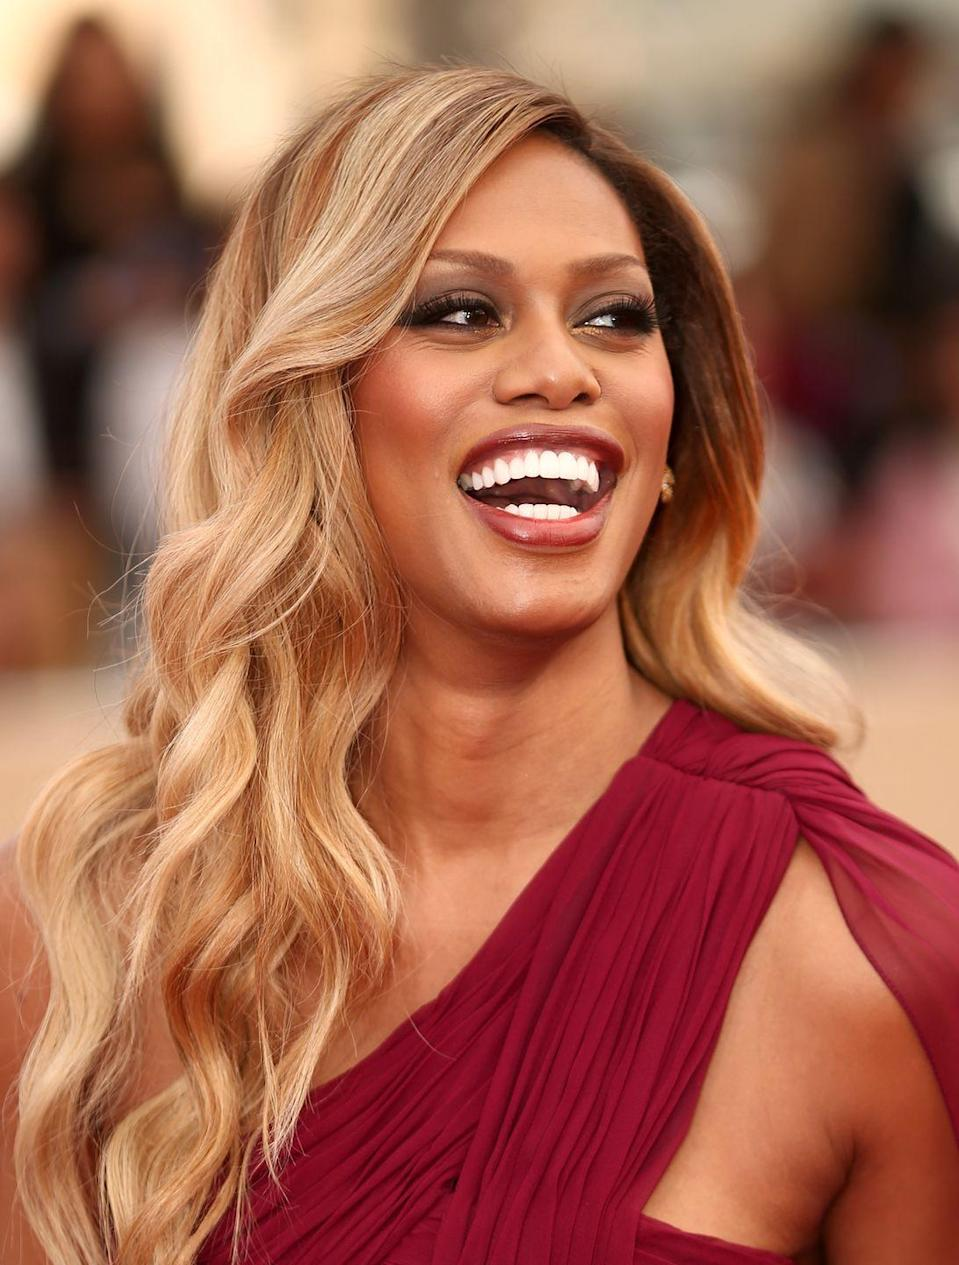 """<p>She rose to fame via <em>Orange is the New Black</em>, but Laverne Cox is a true blonde bombshell on the red carpet. Here, she rocks voluminous, honeyed, soft blonde waves with subtle """"root melt""""—meaning her hair is darker at the roots, giving a deeper, luxurious, layered look.</p>"""